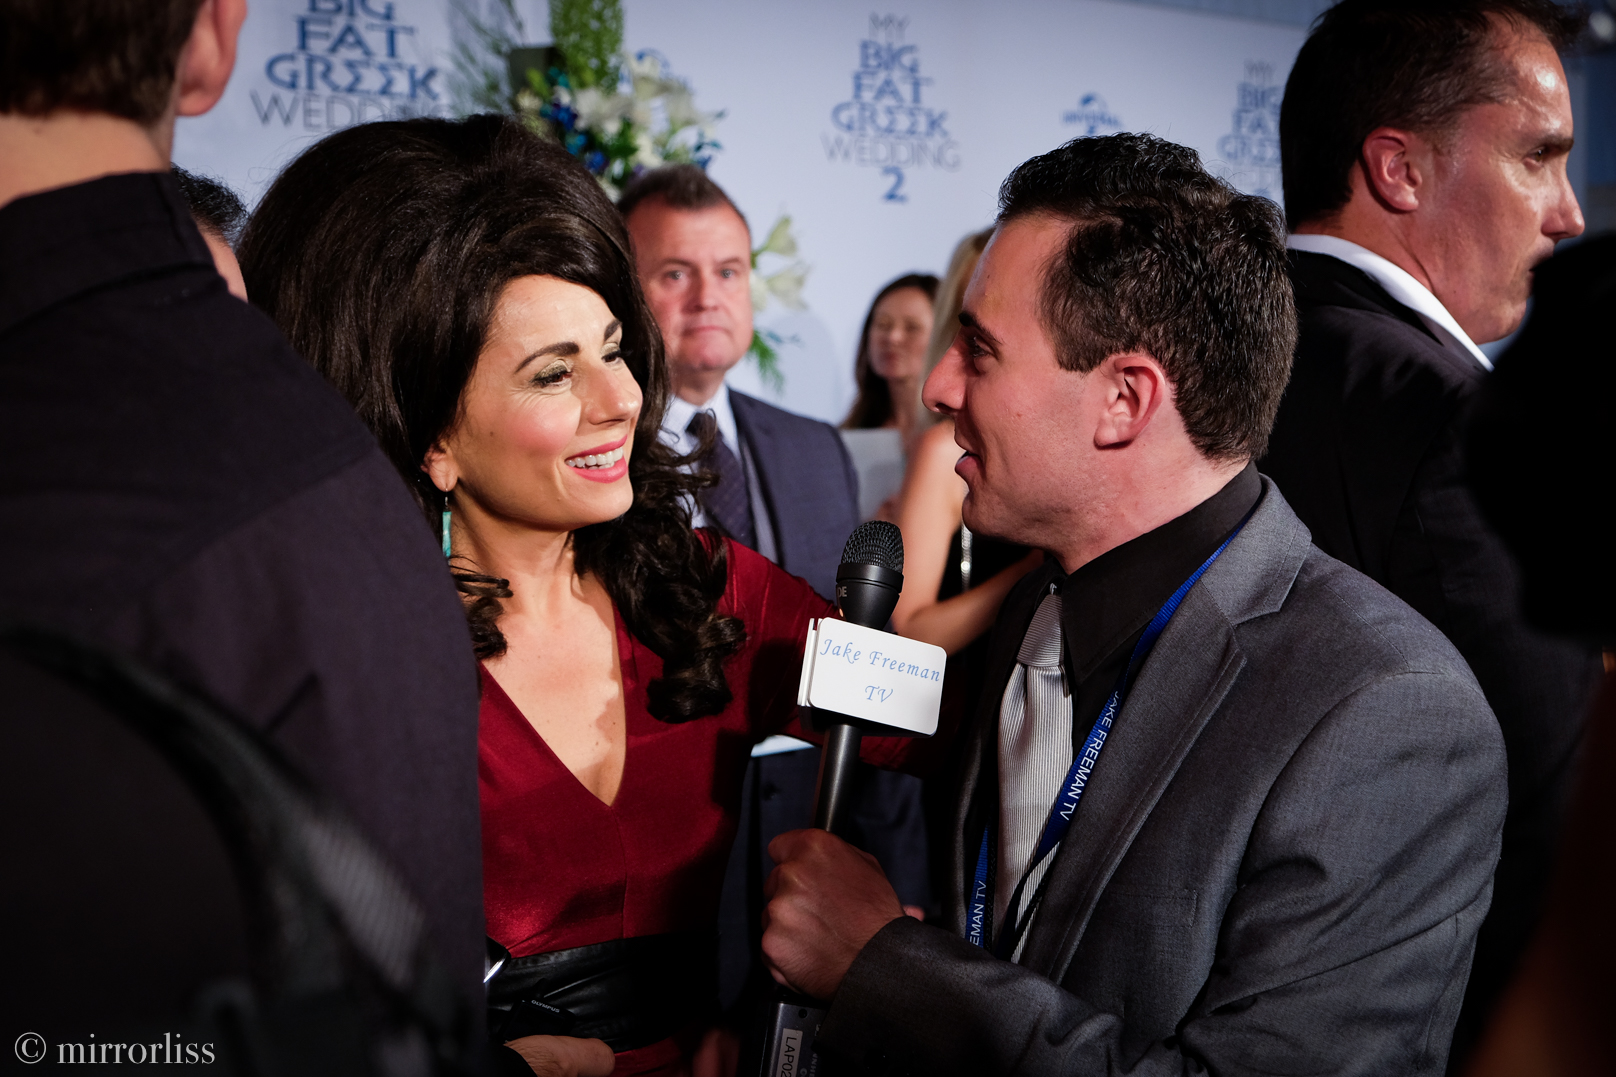 Above- Jake Freeman interviewing Effie, the host of the film's Melbourne premiere. Featured- The film's writer and star Nia Vardalos. Photography by Melissa Romao.